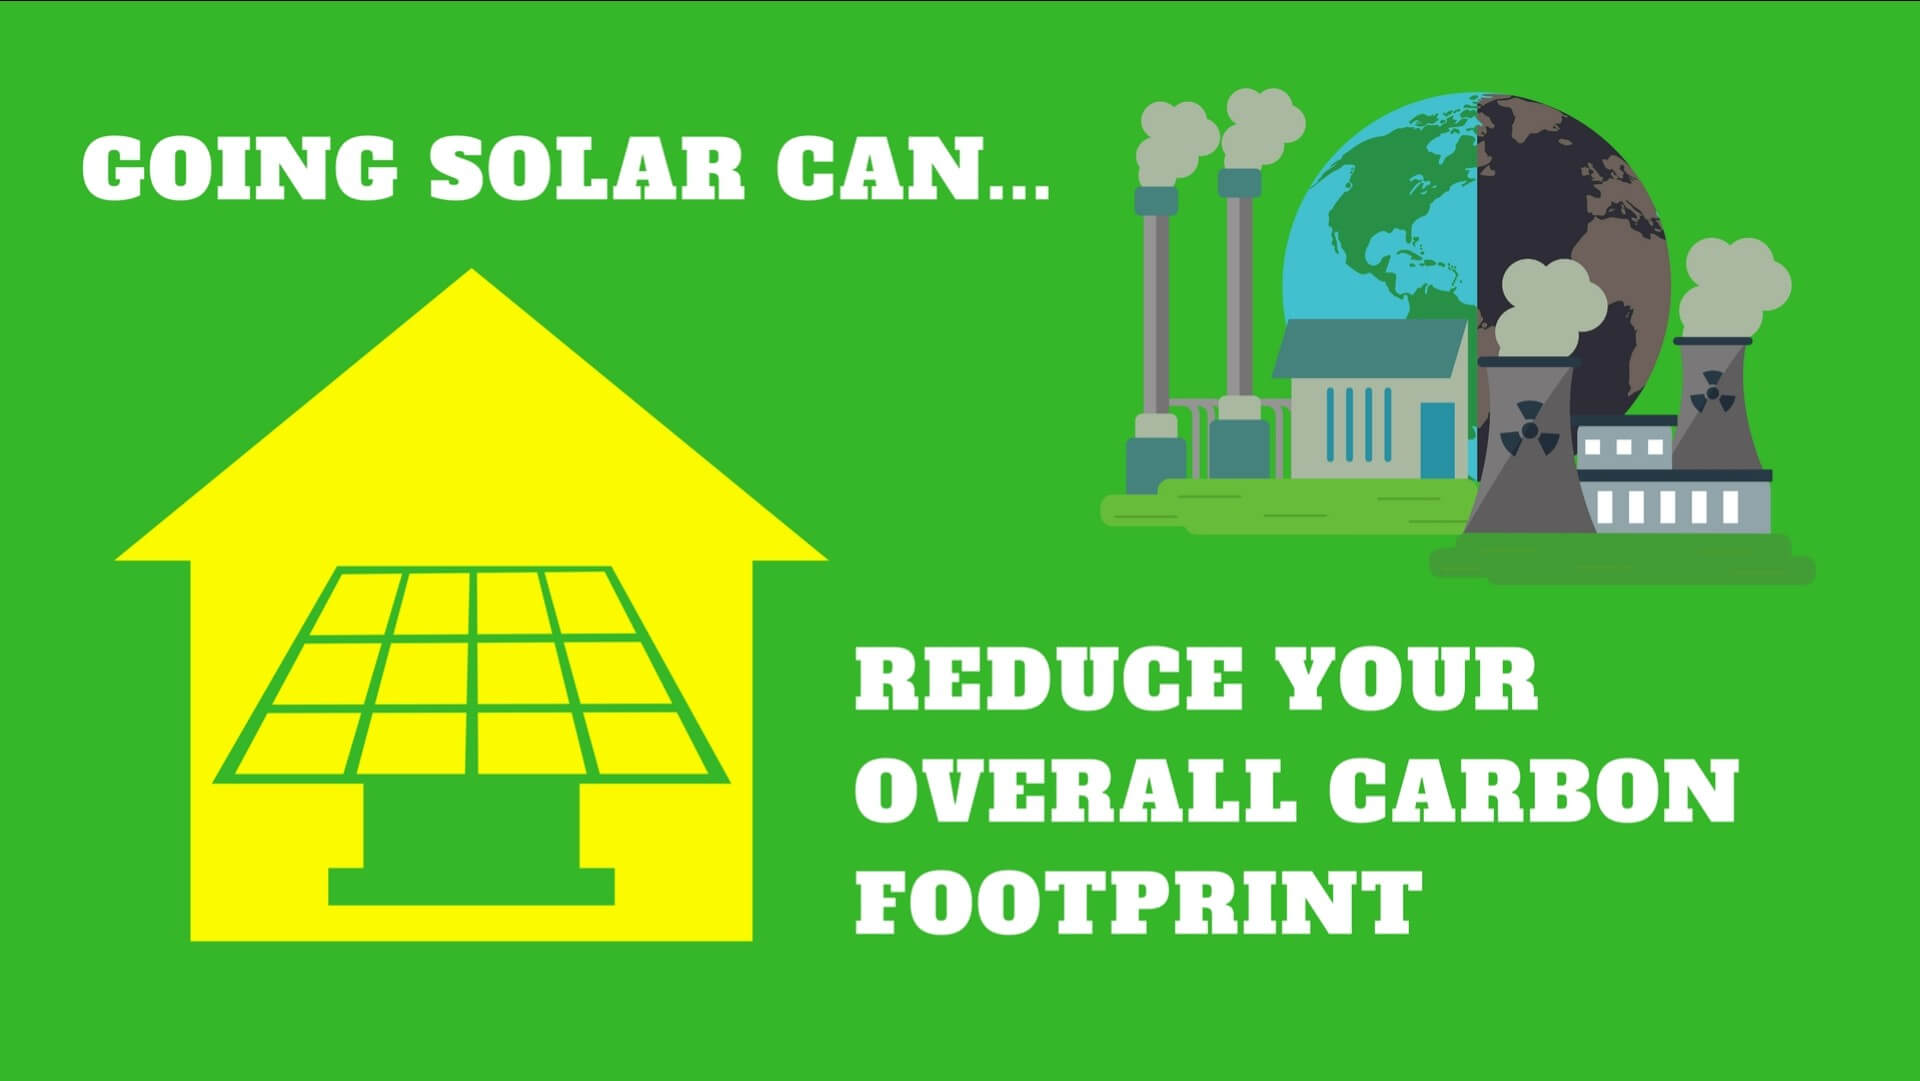 Installing solar electric system on your home or business can potentially increase your property value.